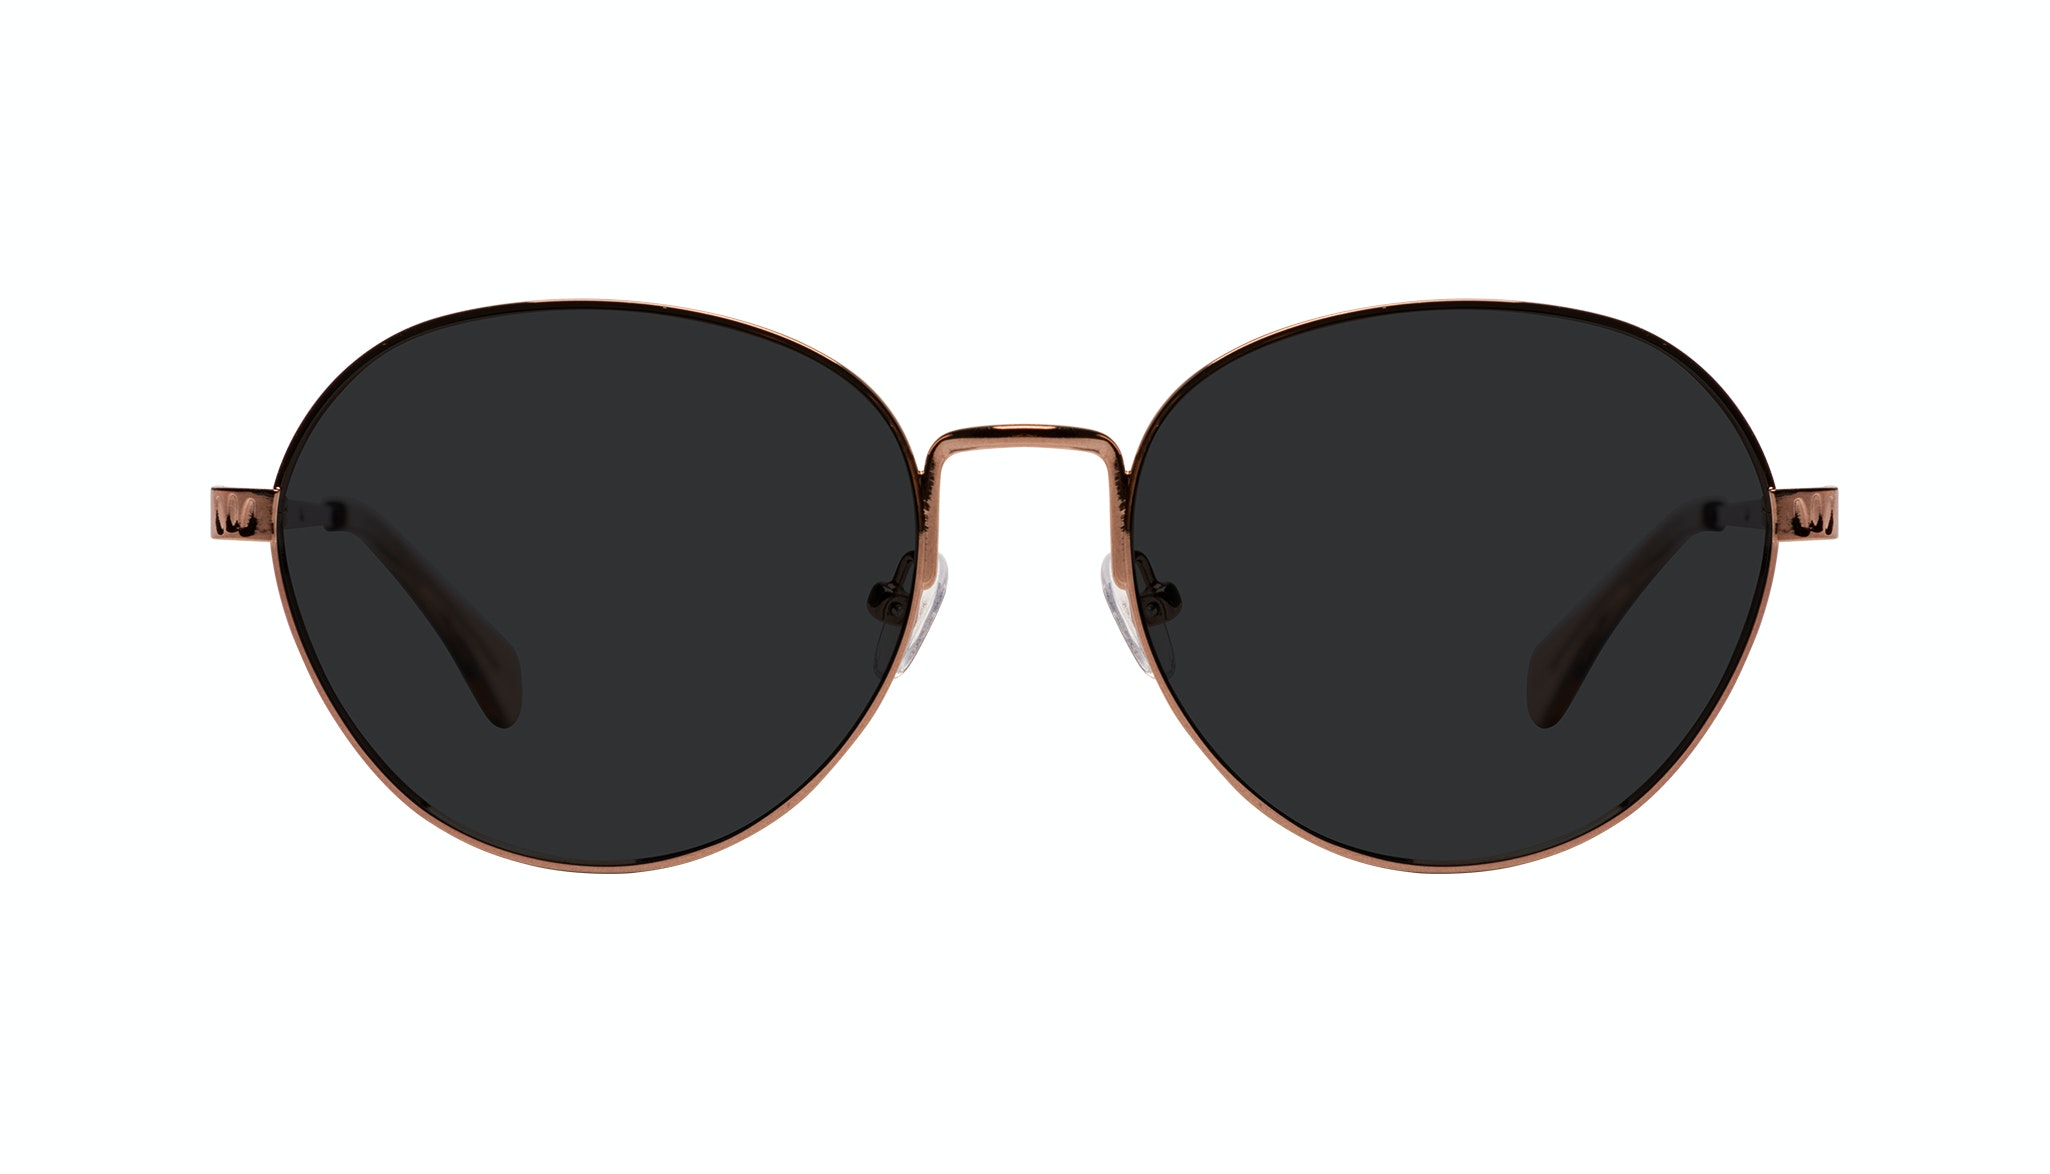 Affordable Fashion Glasses Round Sunglasses Women Brace Plus Rose Gold